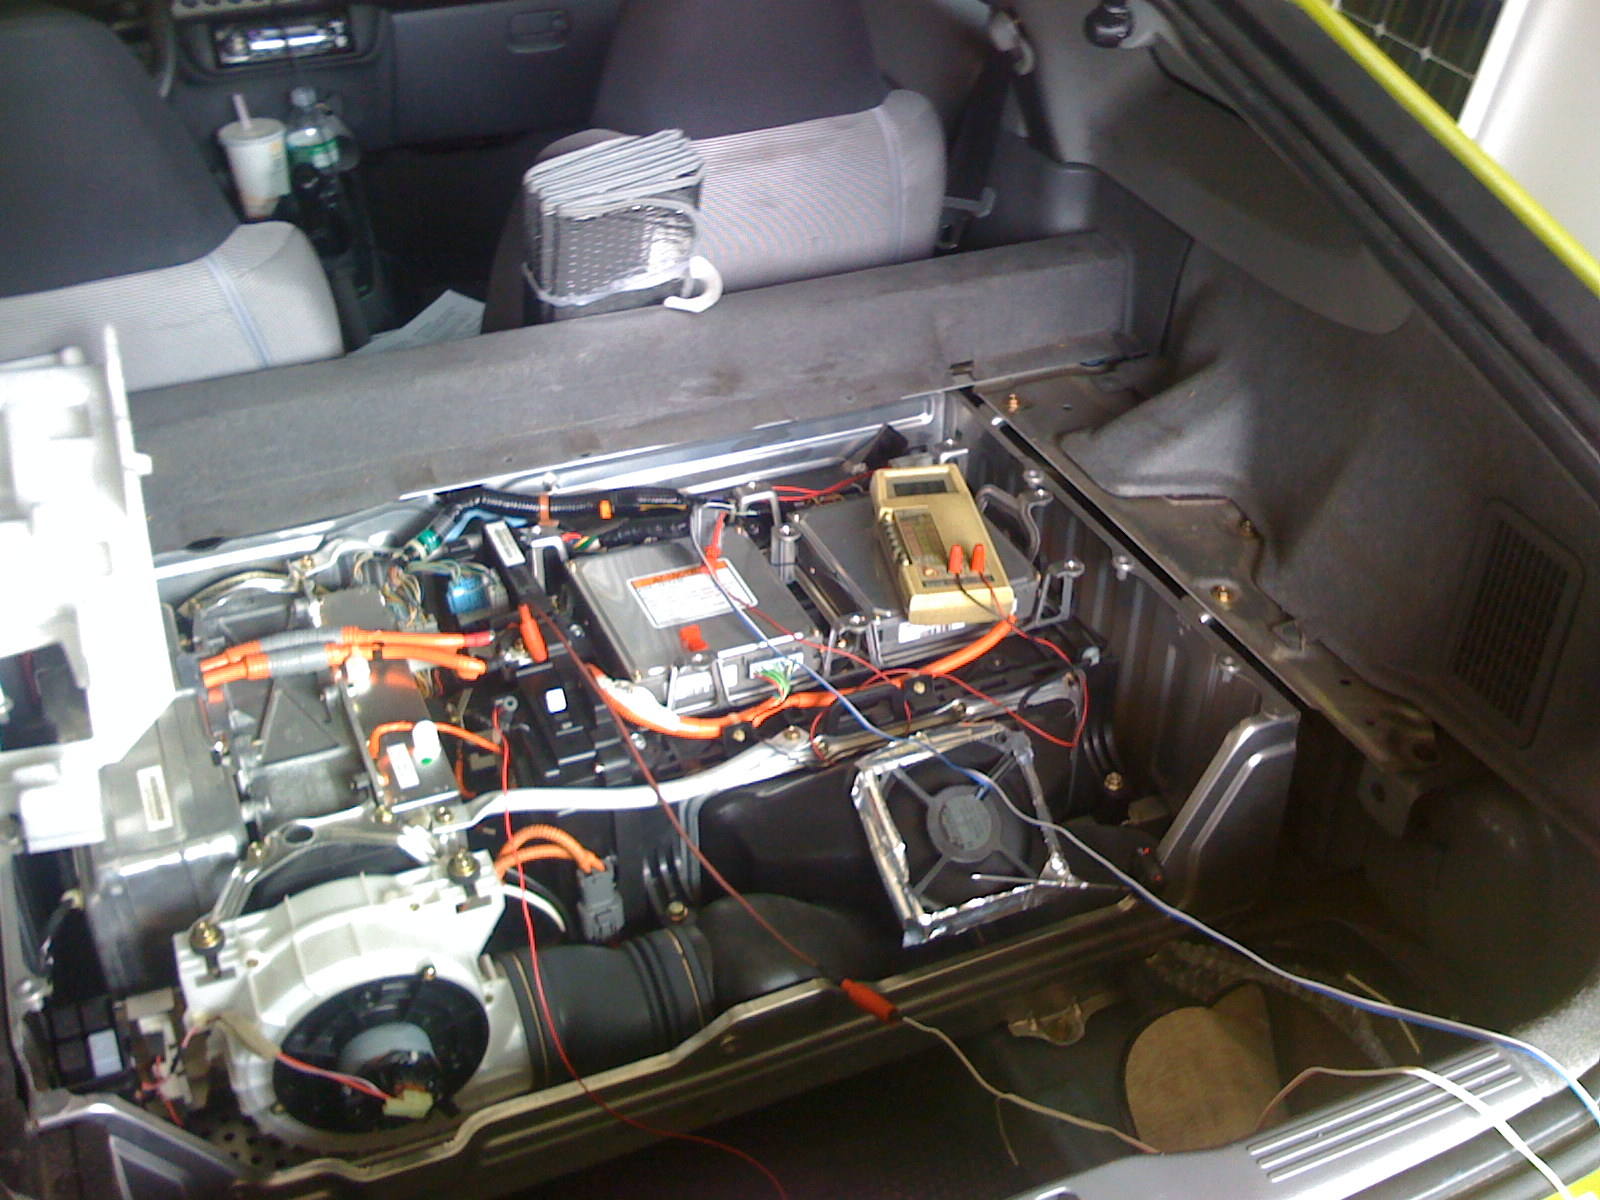 Pictures Of My Honda Insight Now: